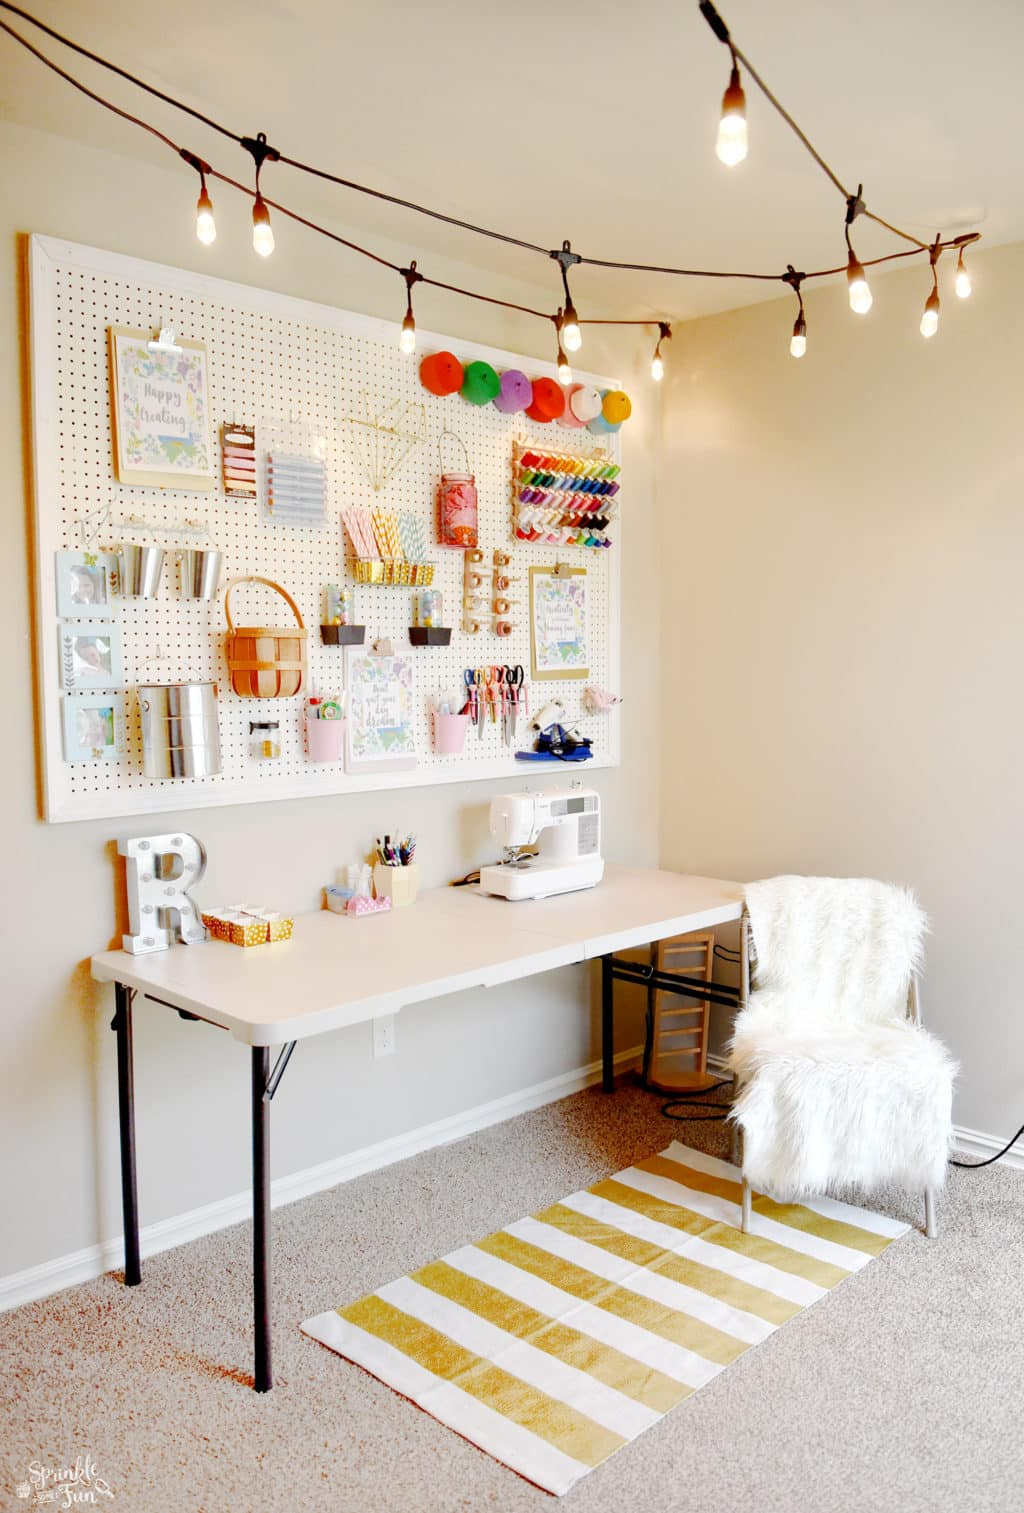 Craft Room Makeover with Café Lights.This craft room reveal is everything I dreamed of!